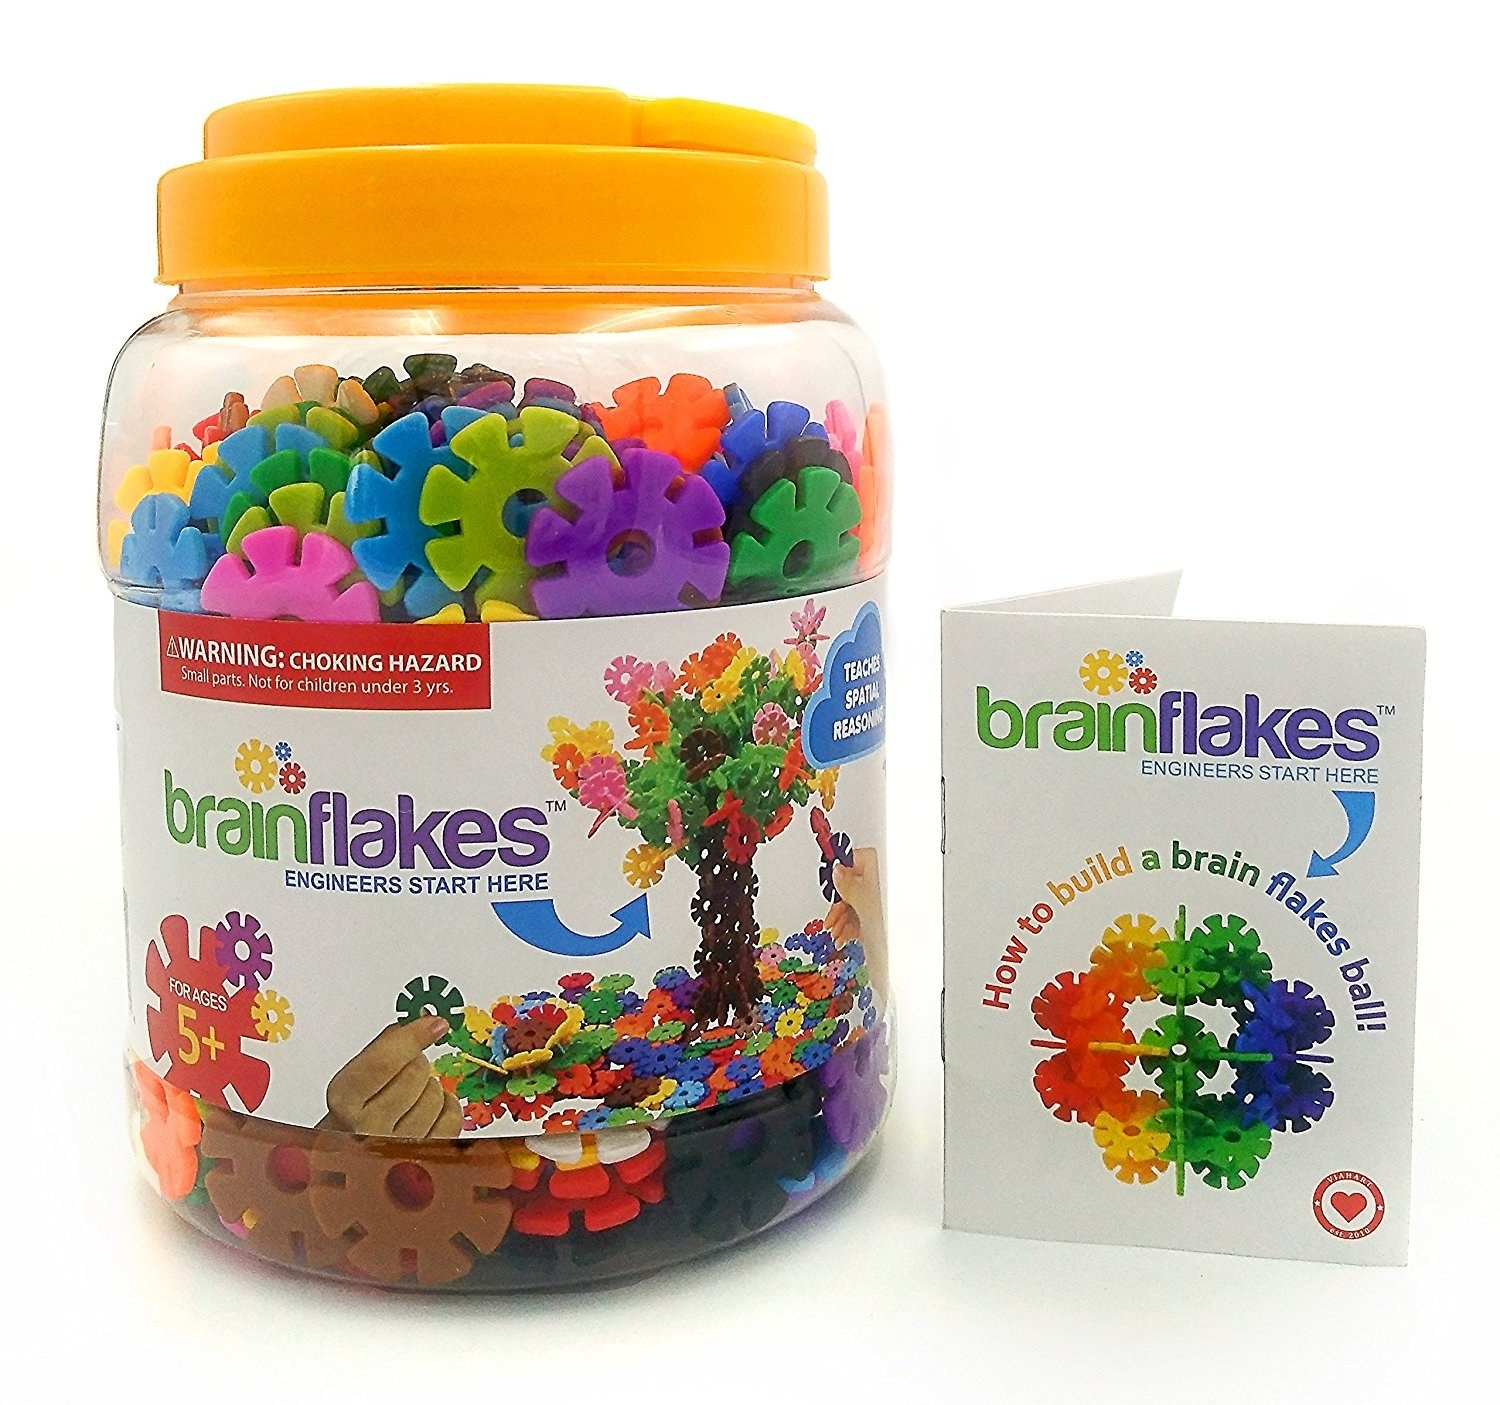 3 These Brain Flakes Interlocking Discs That Are Endless Fun For Little Engineers